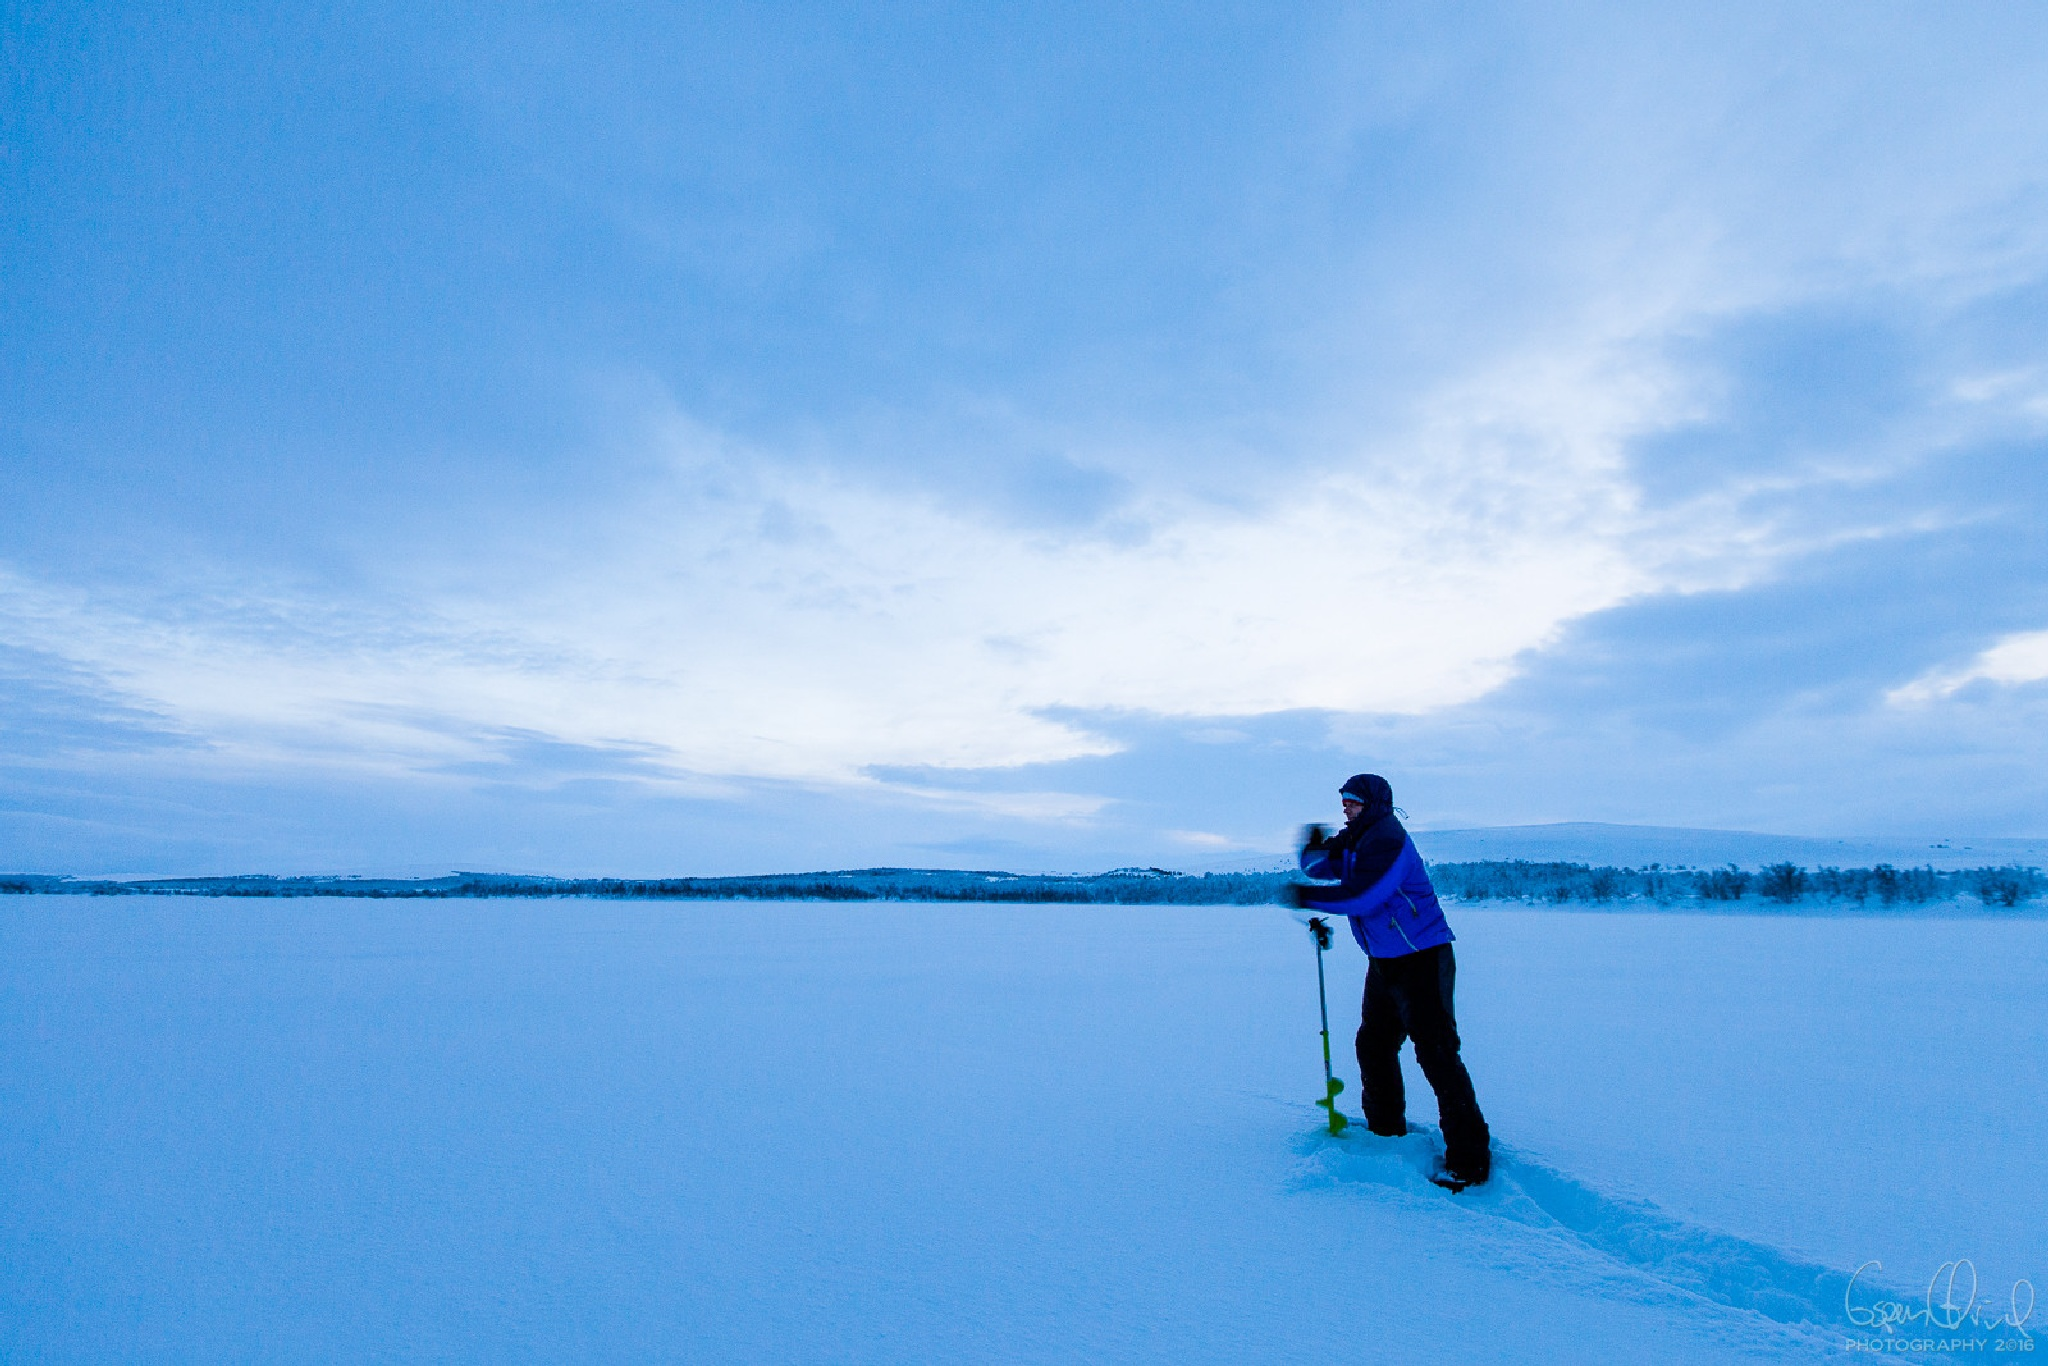 Drilling a hole in the ice by Espen Ørud